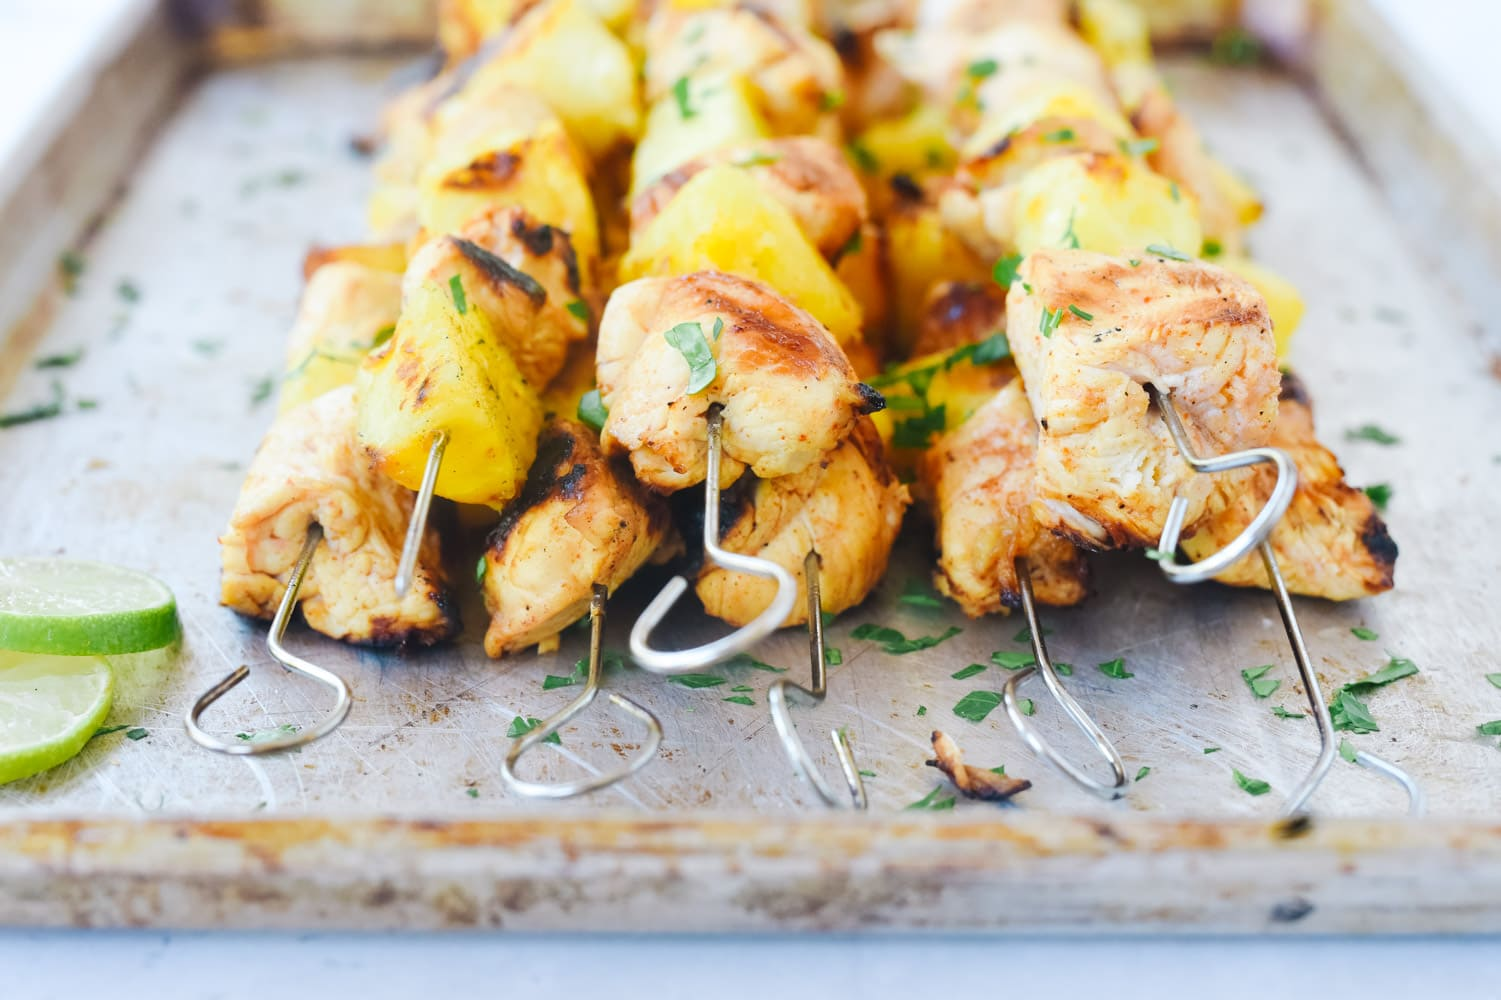 Chili Lime Pineapple Chicken Skewers on a tray